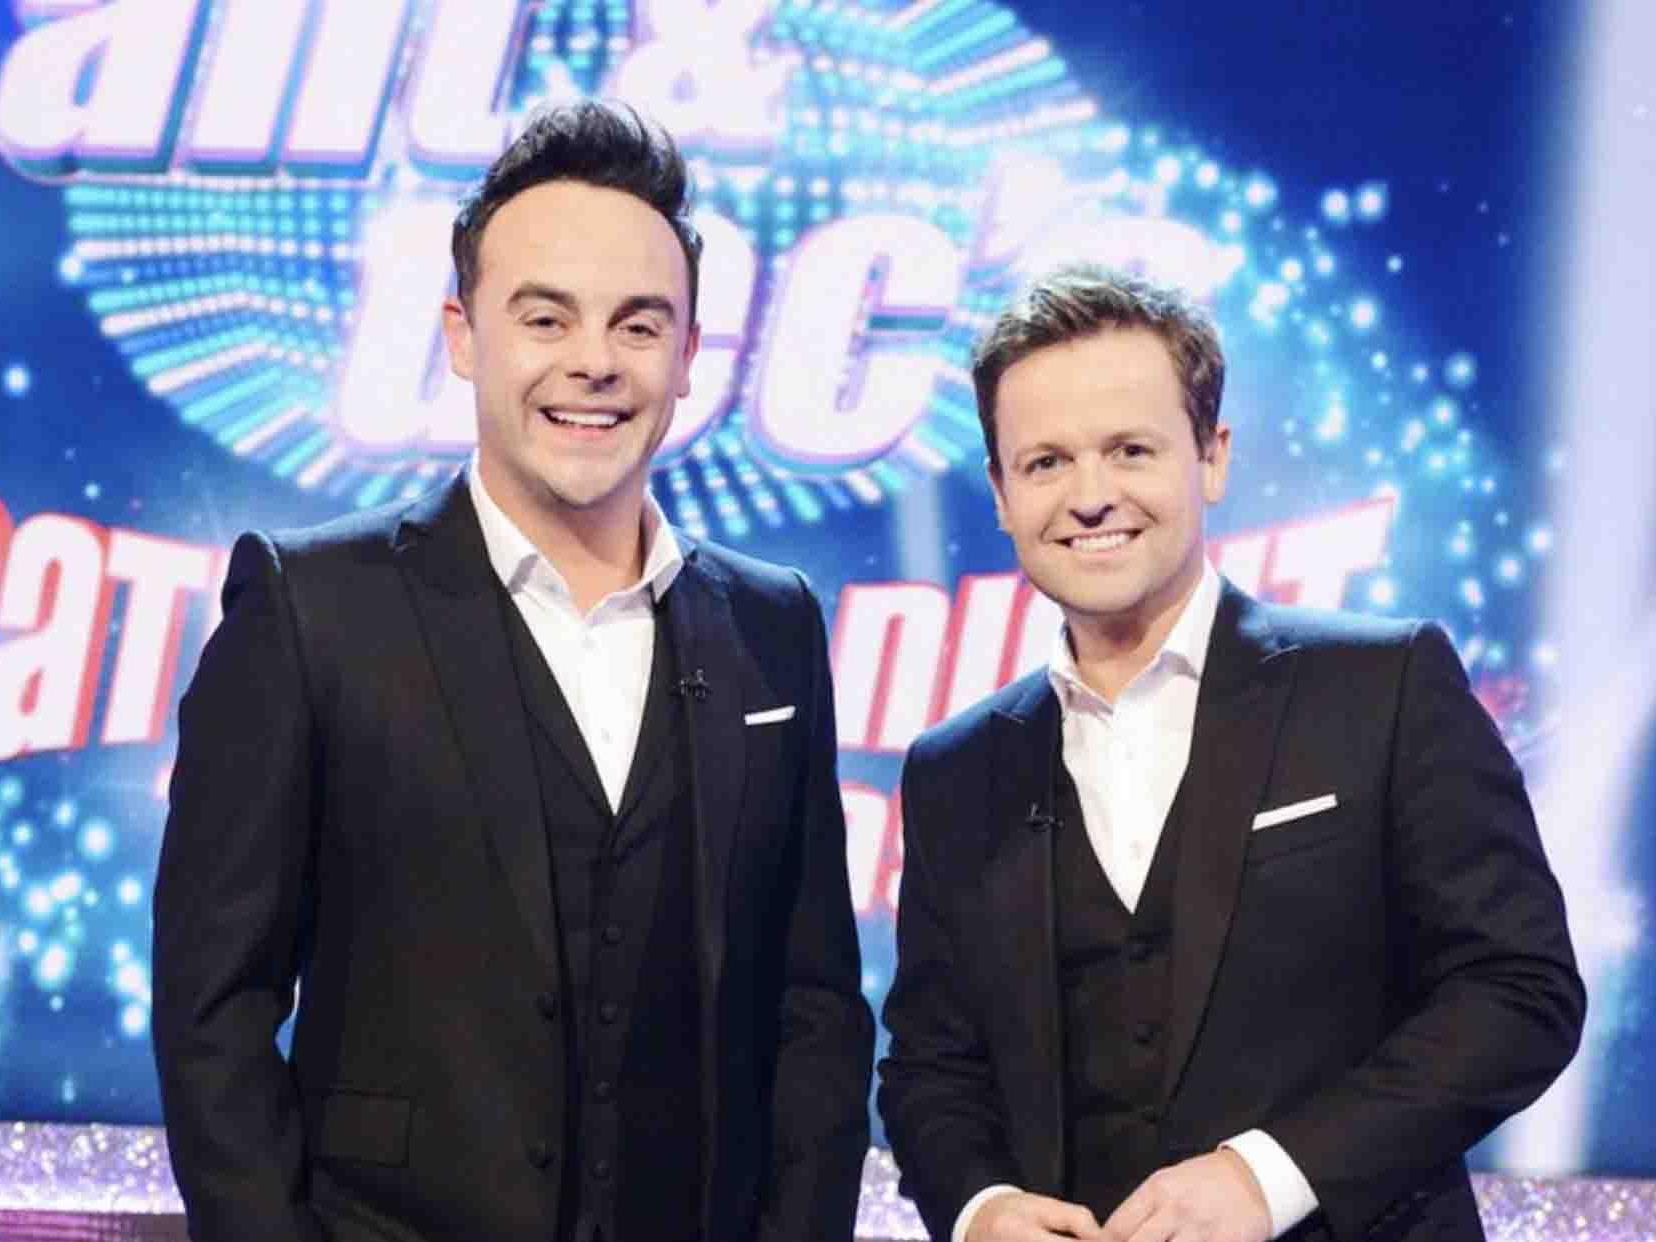 Ant and Dec caught up in blackface row as controversial Saturday Night Takeaway footage resurfaces